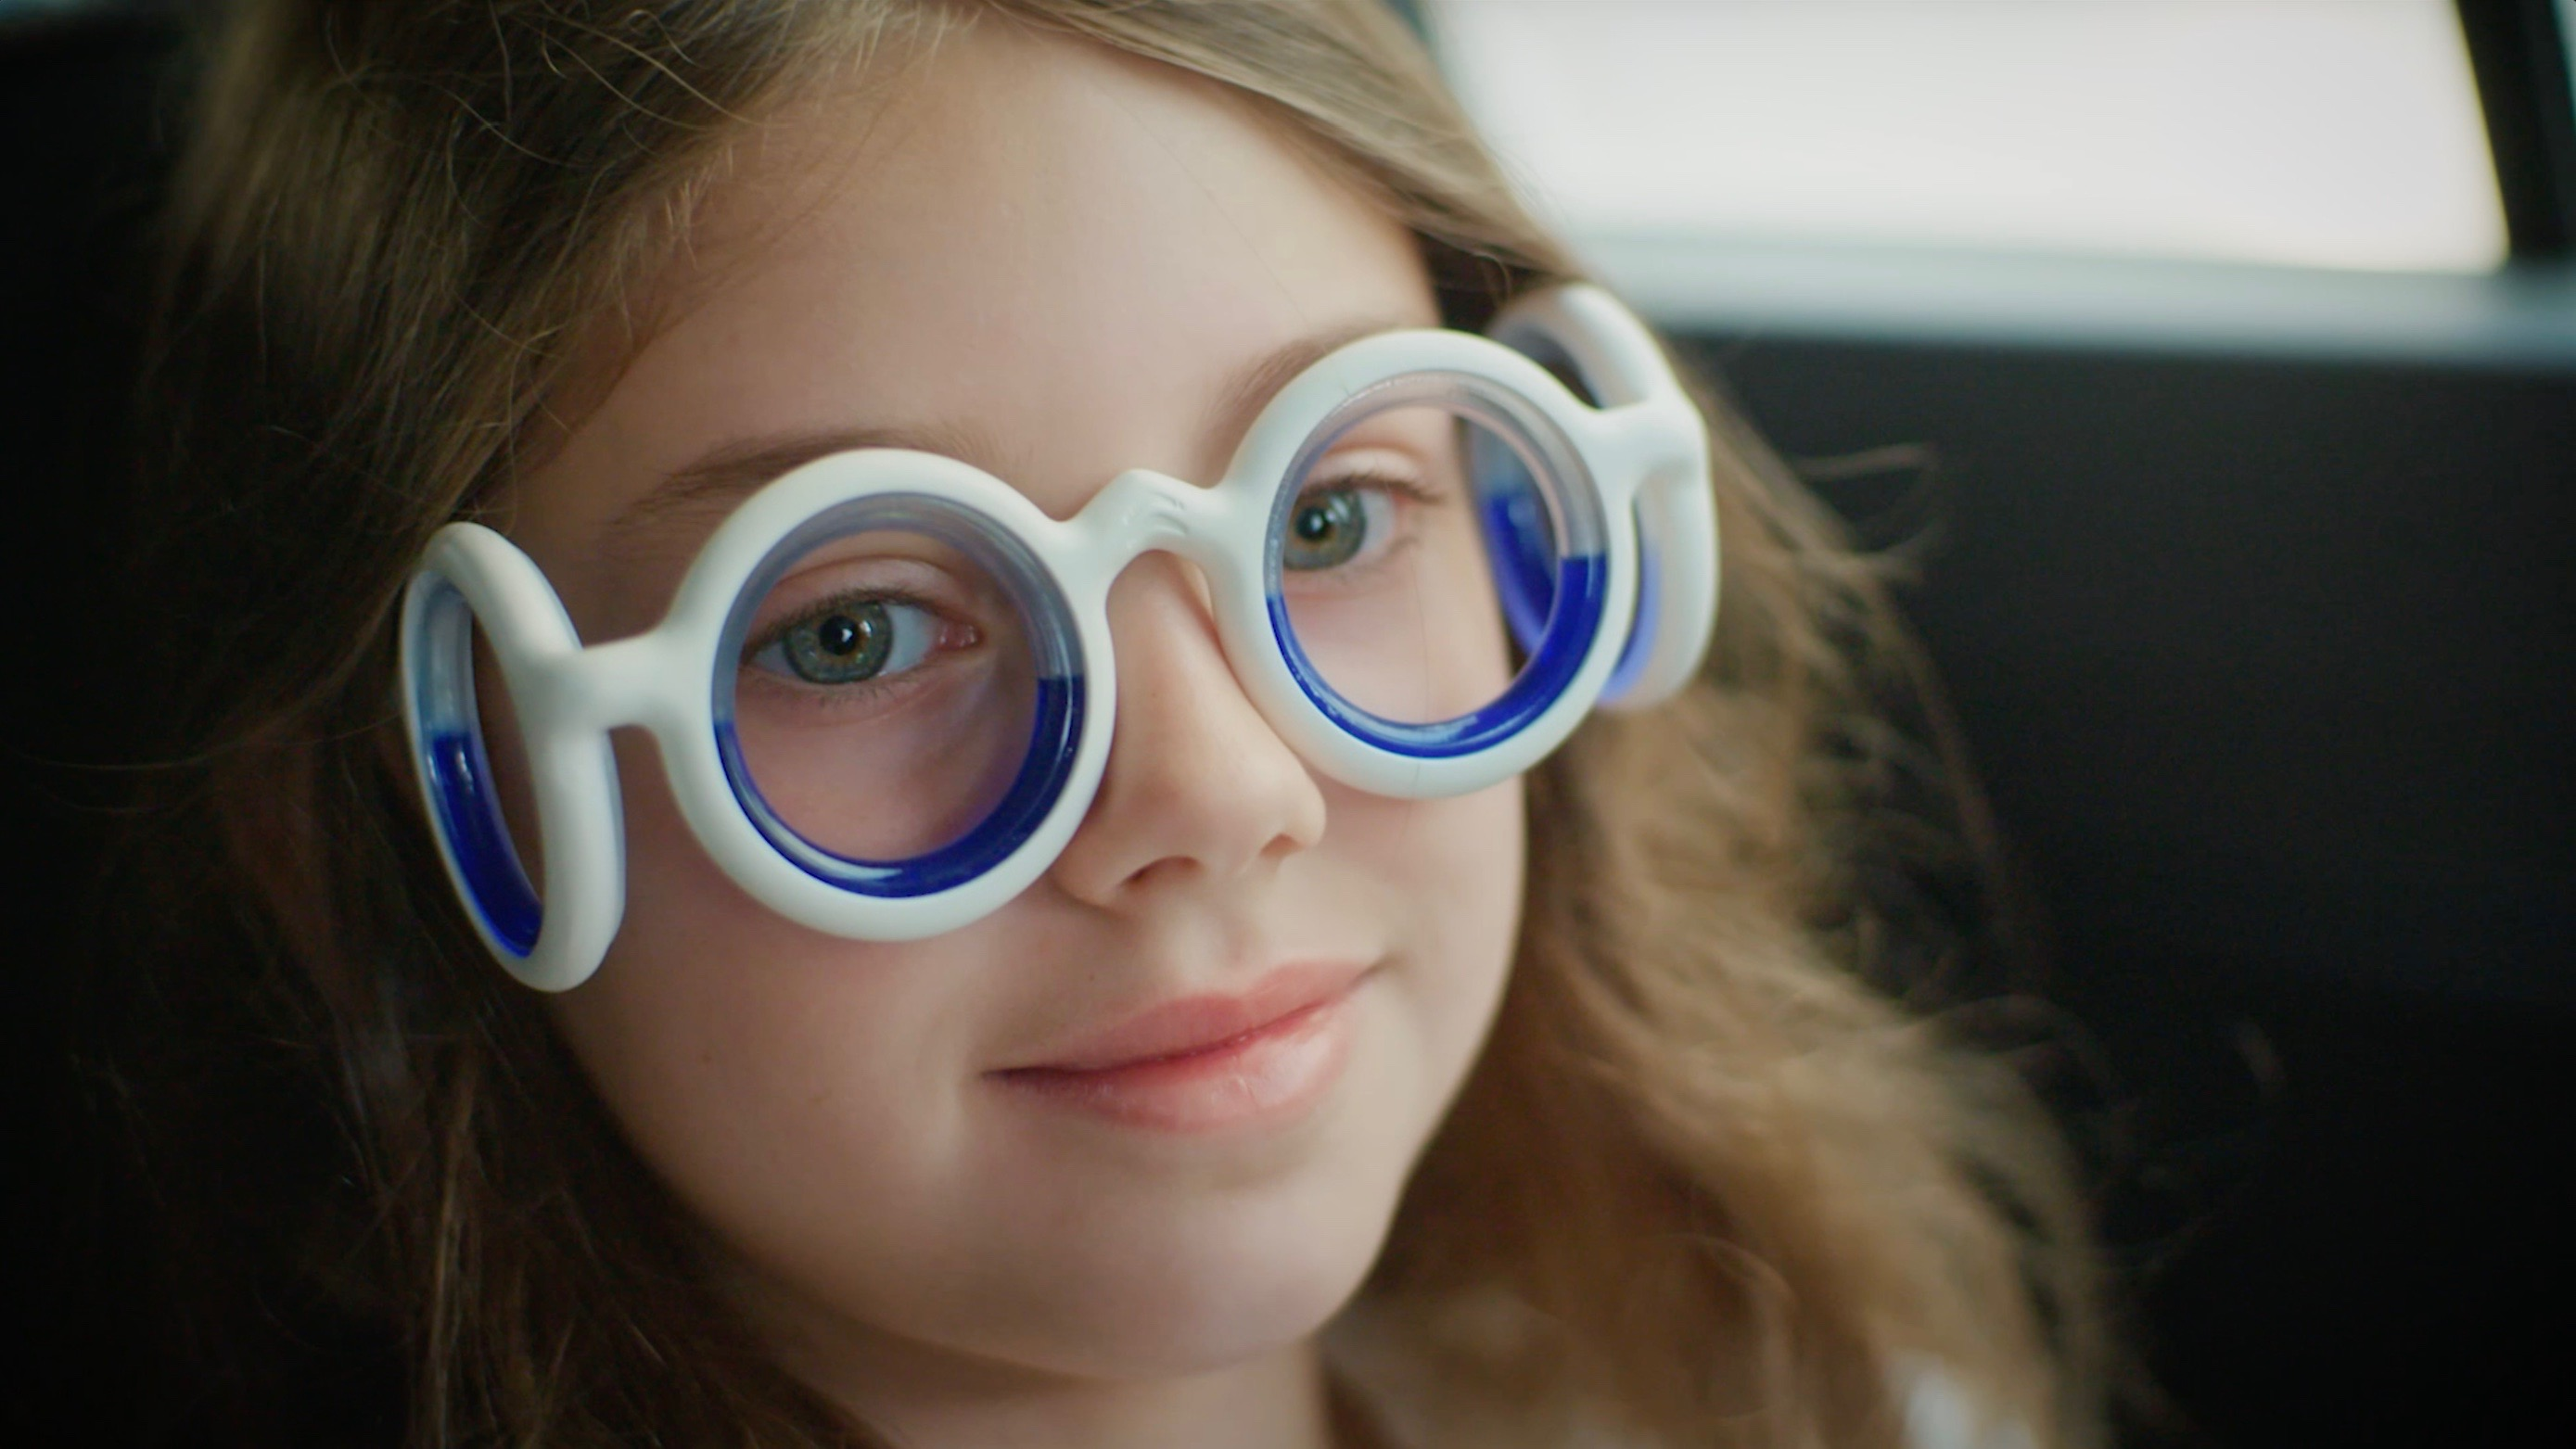 Citroen launches glasses to cure car sickness